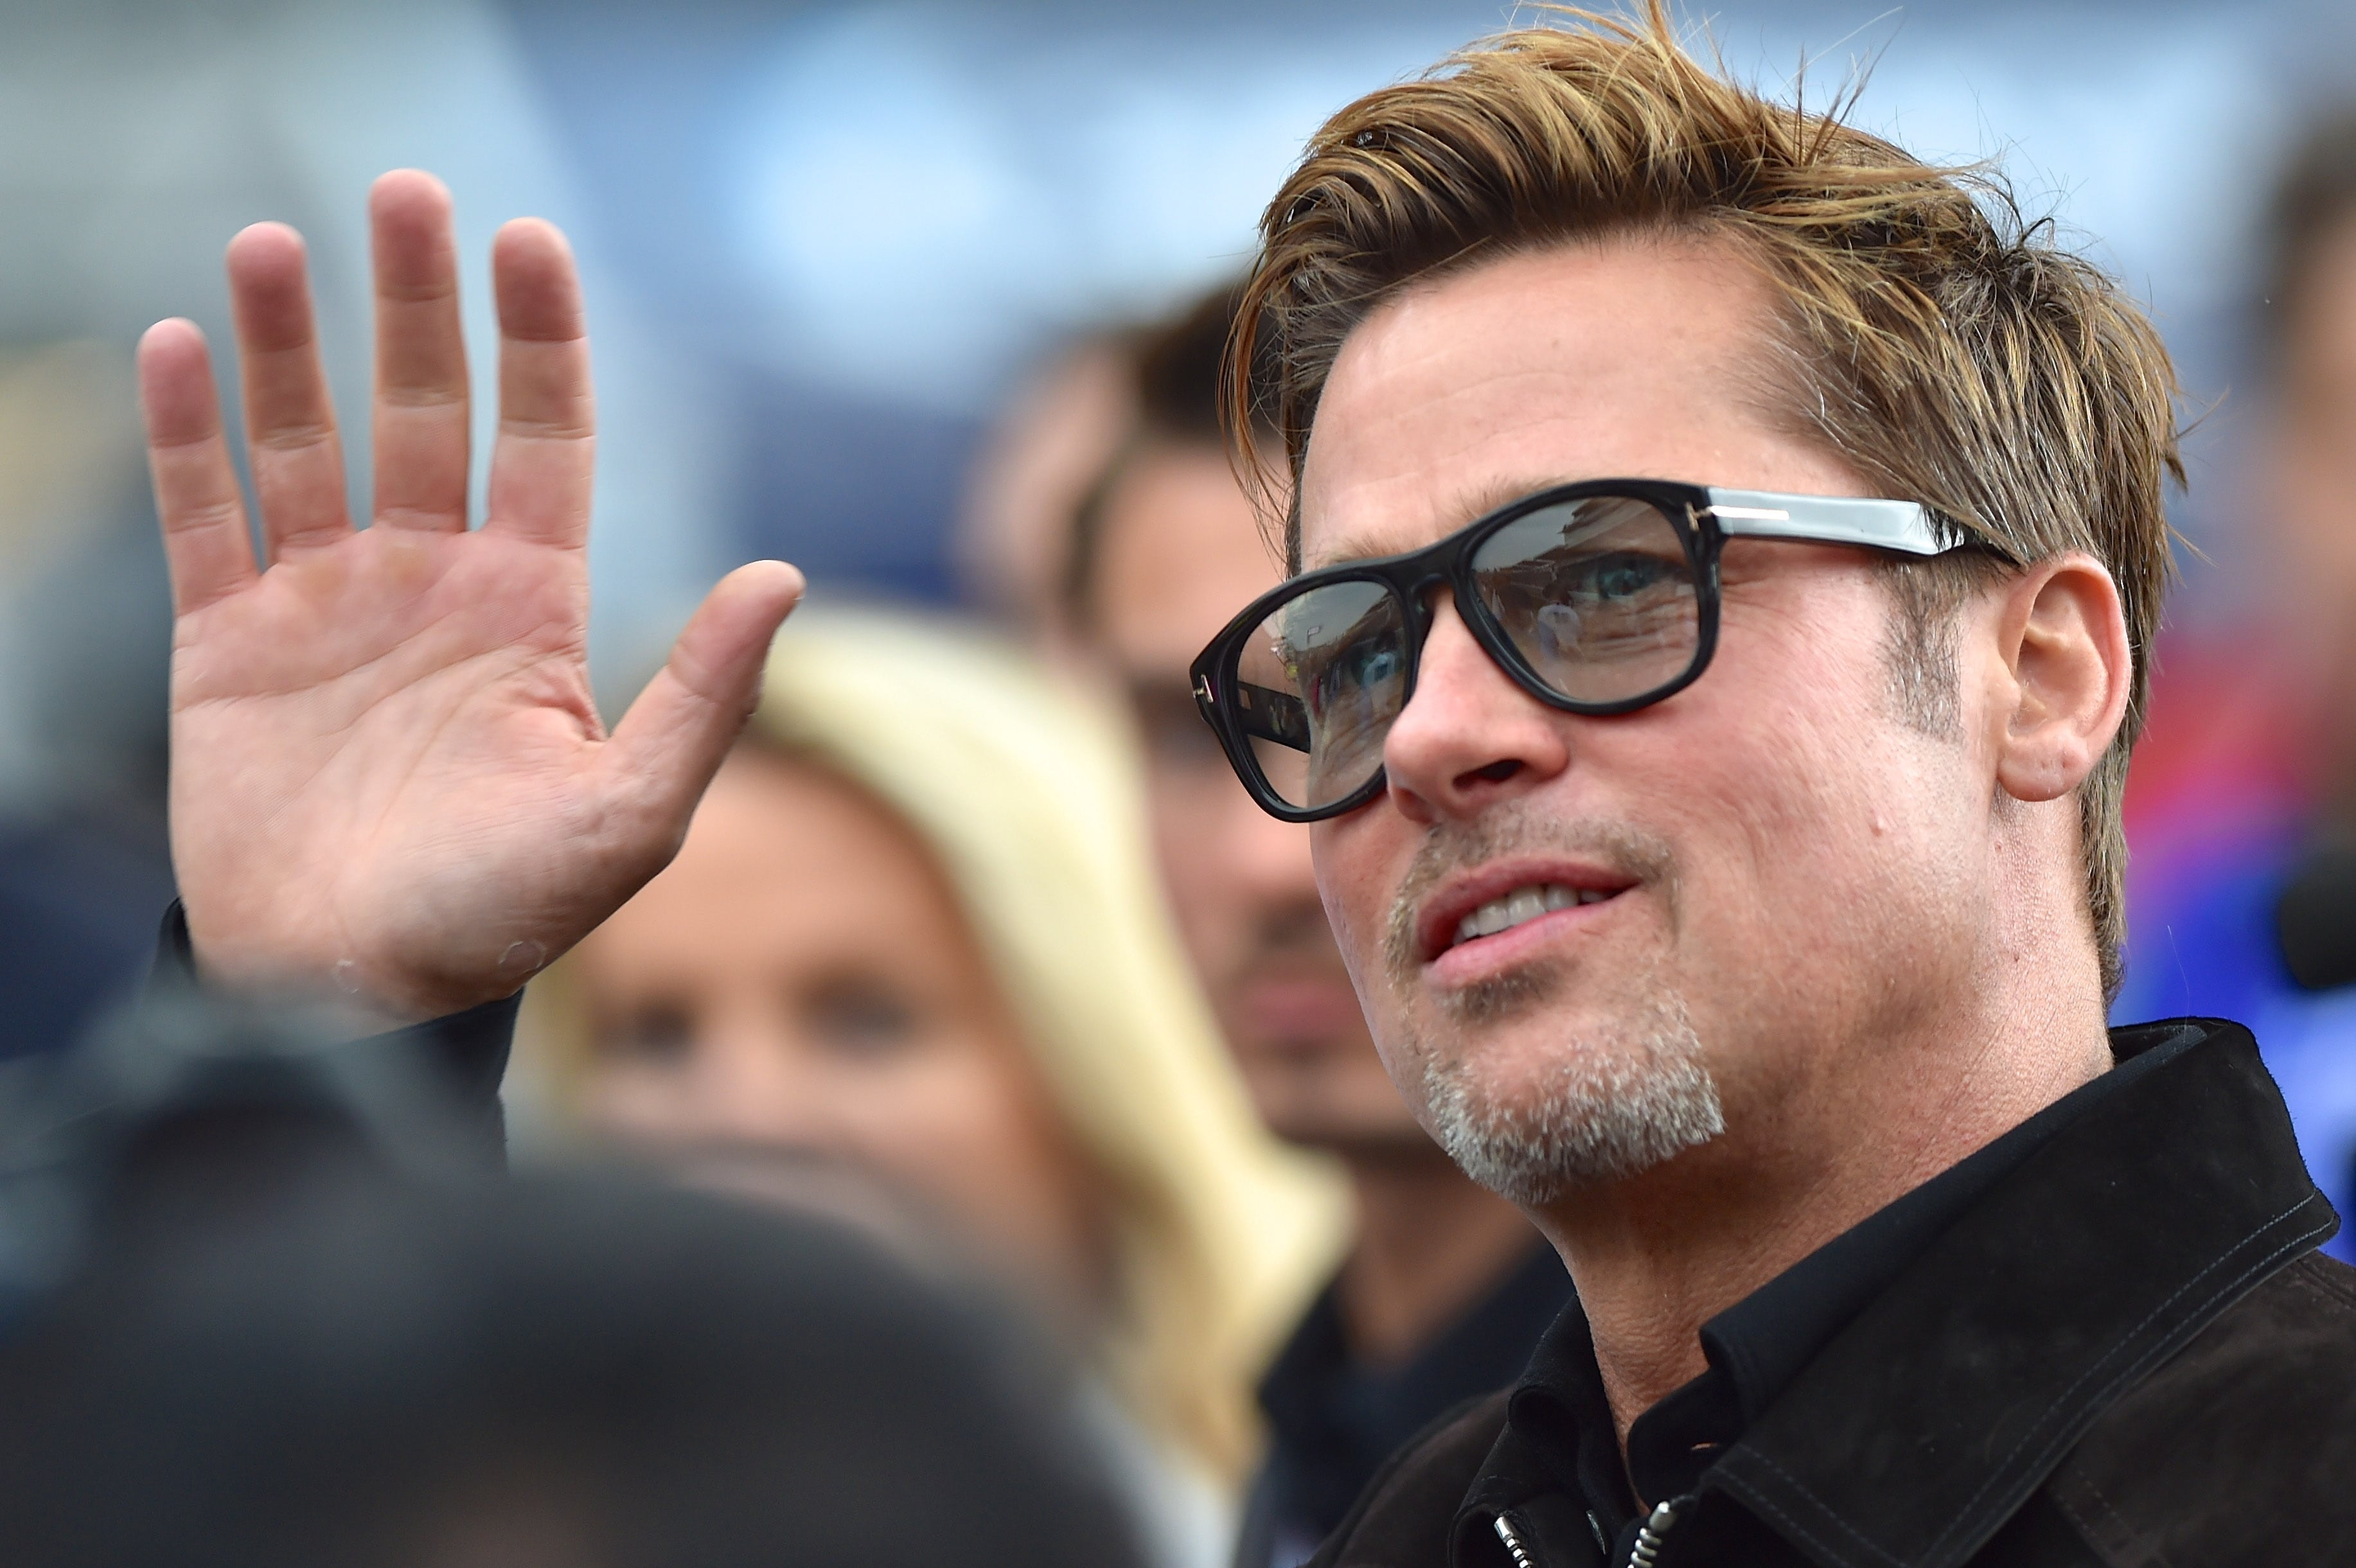 Brad Pitt goes by William when he flirts with a woman. (Photo: WENN)